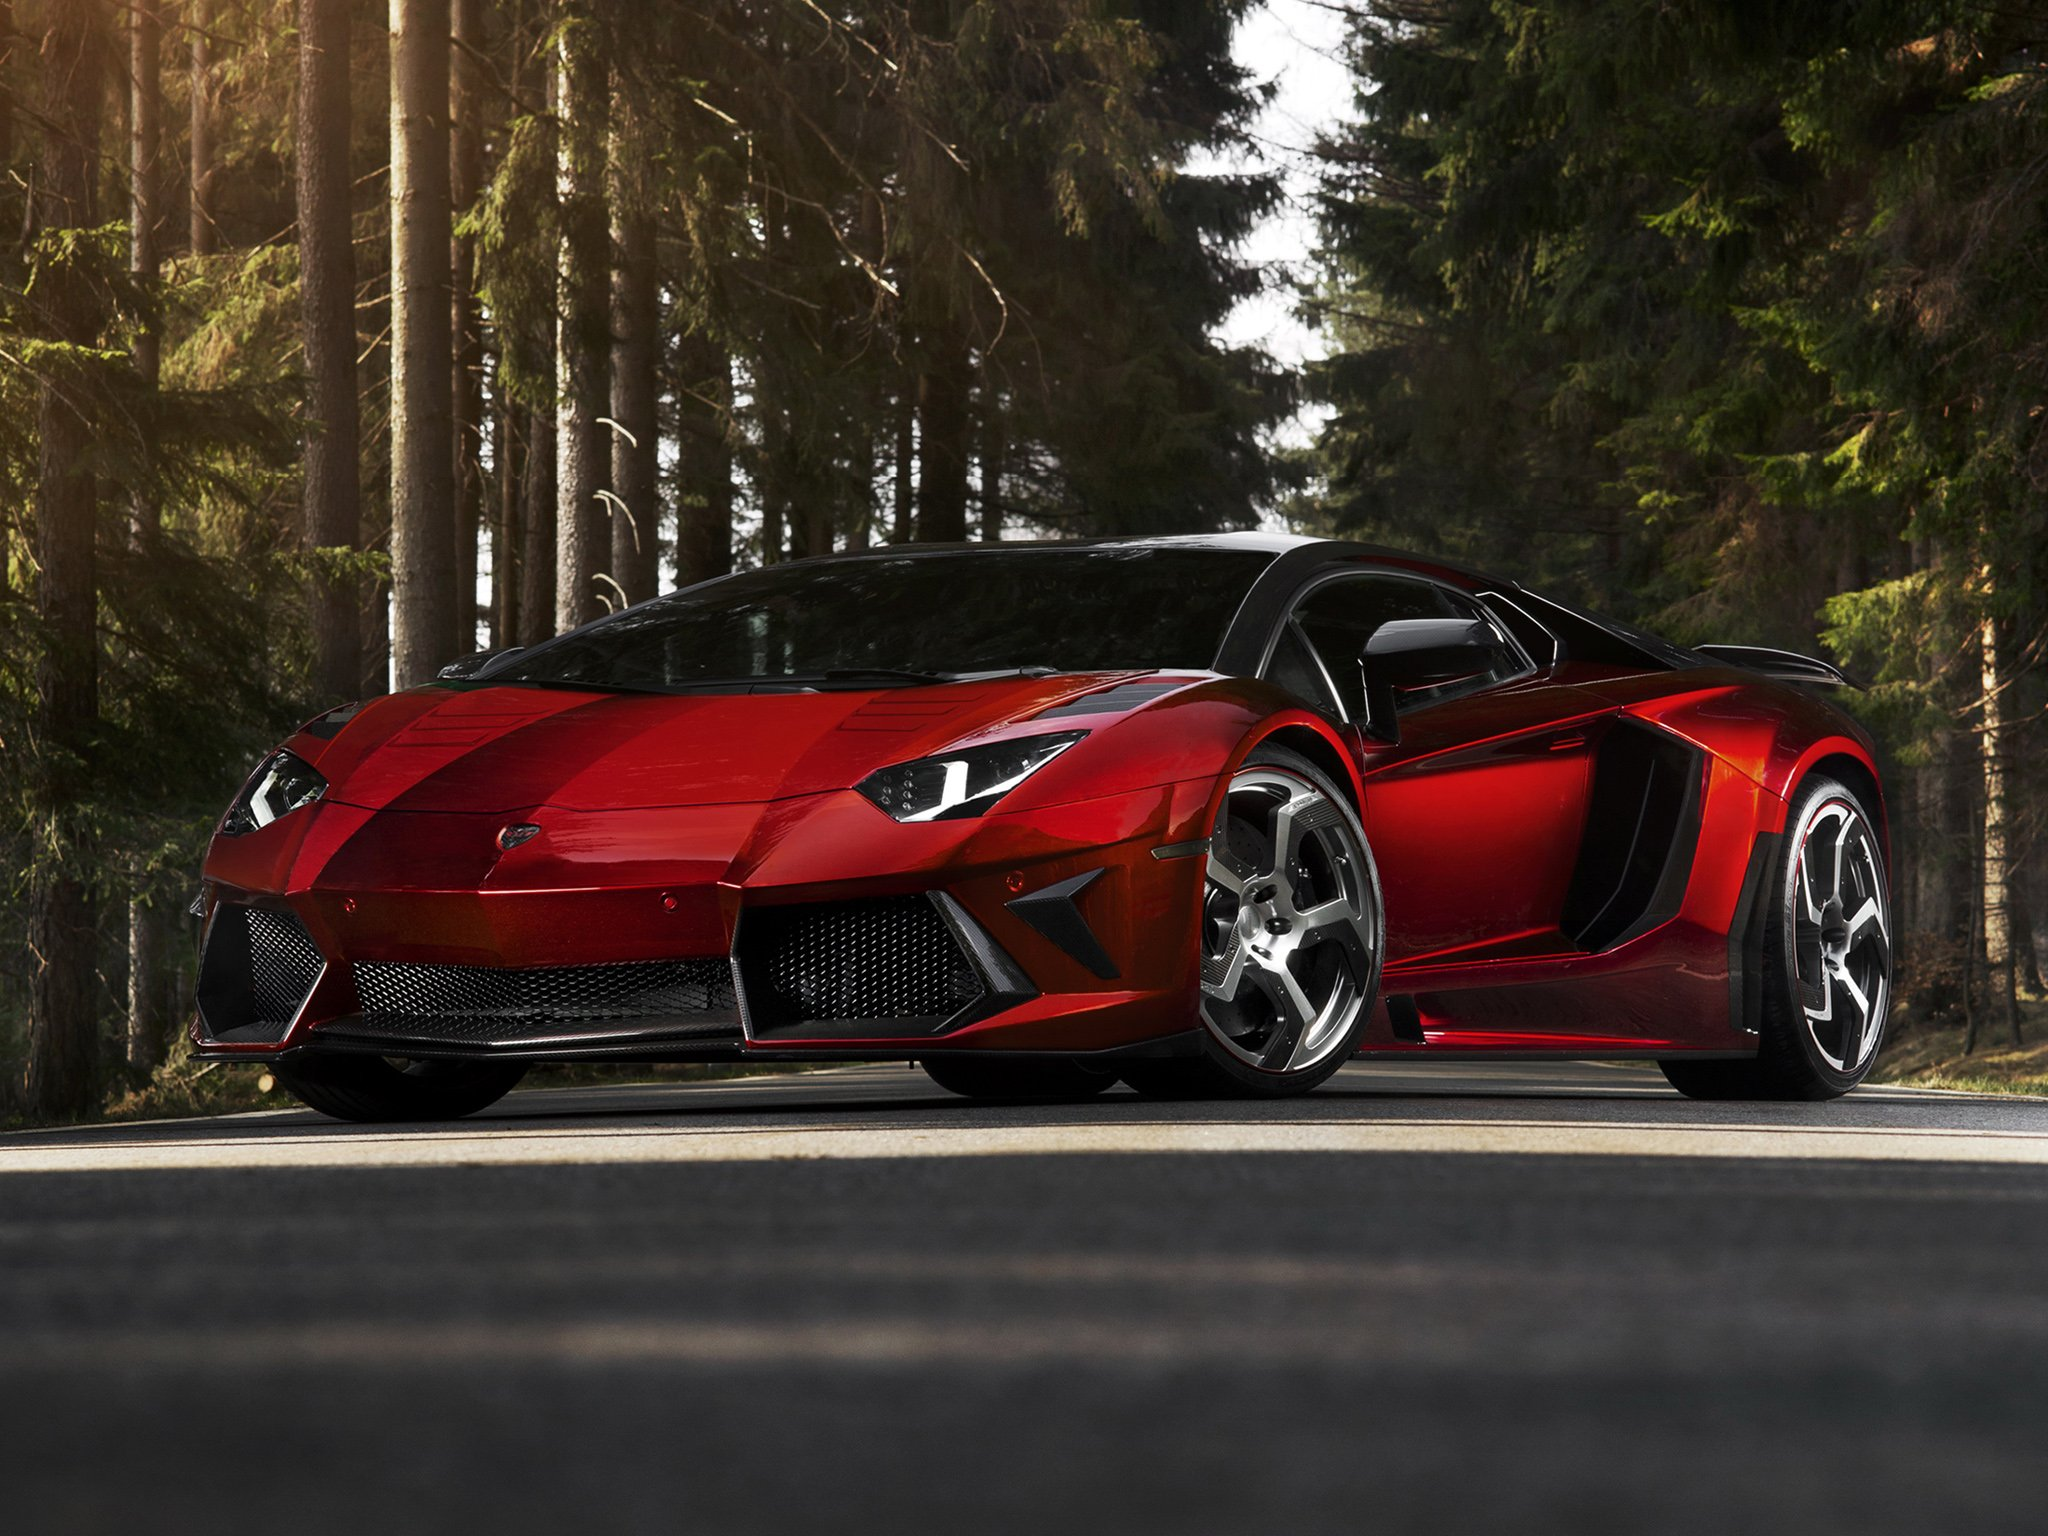 modified lamborghini aventador wallpaper images galleries with a bite. Black Bedroom Furniture Sets. Home Design Ideas